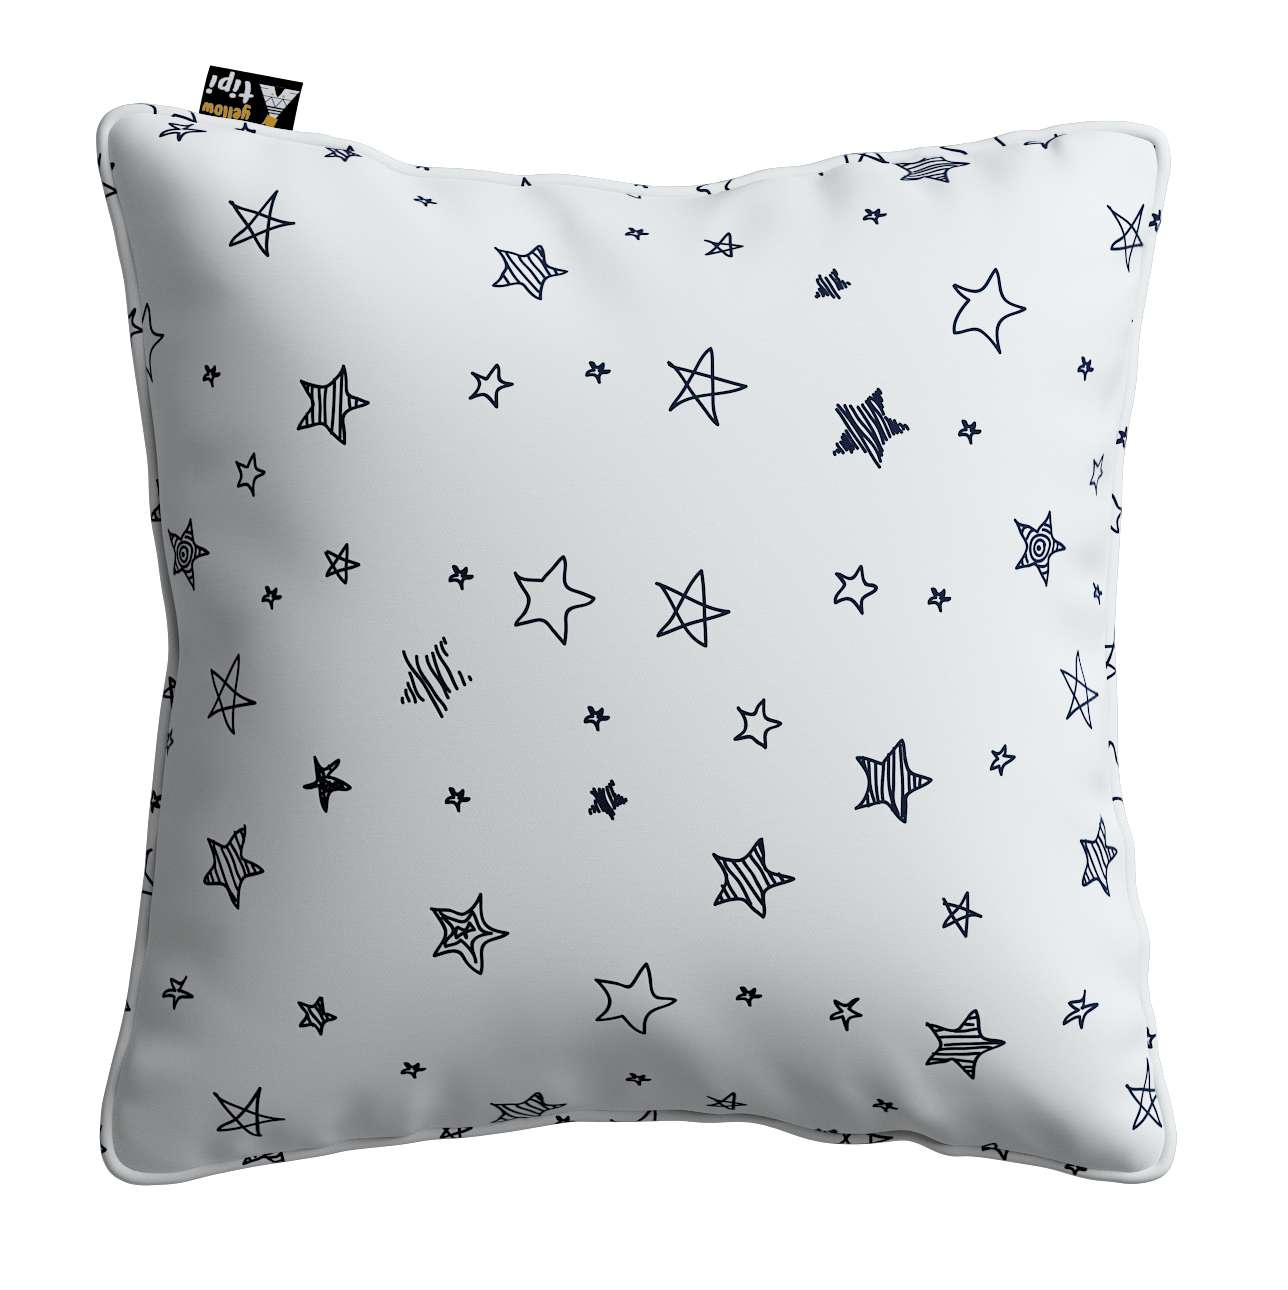 Lola piped cushion cover in collection Magic Collection, fabric: 500-08